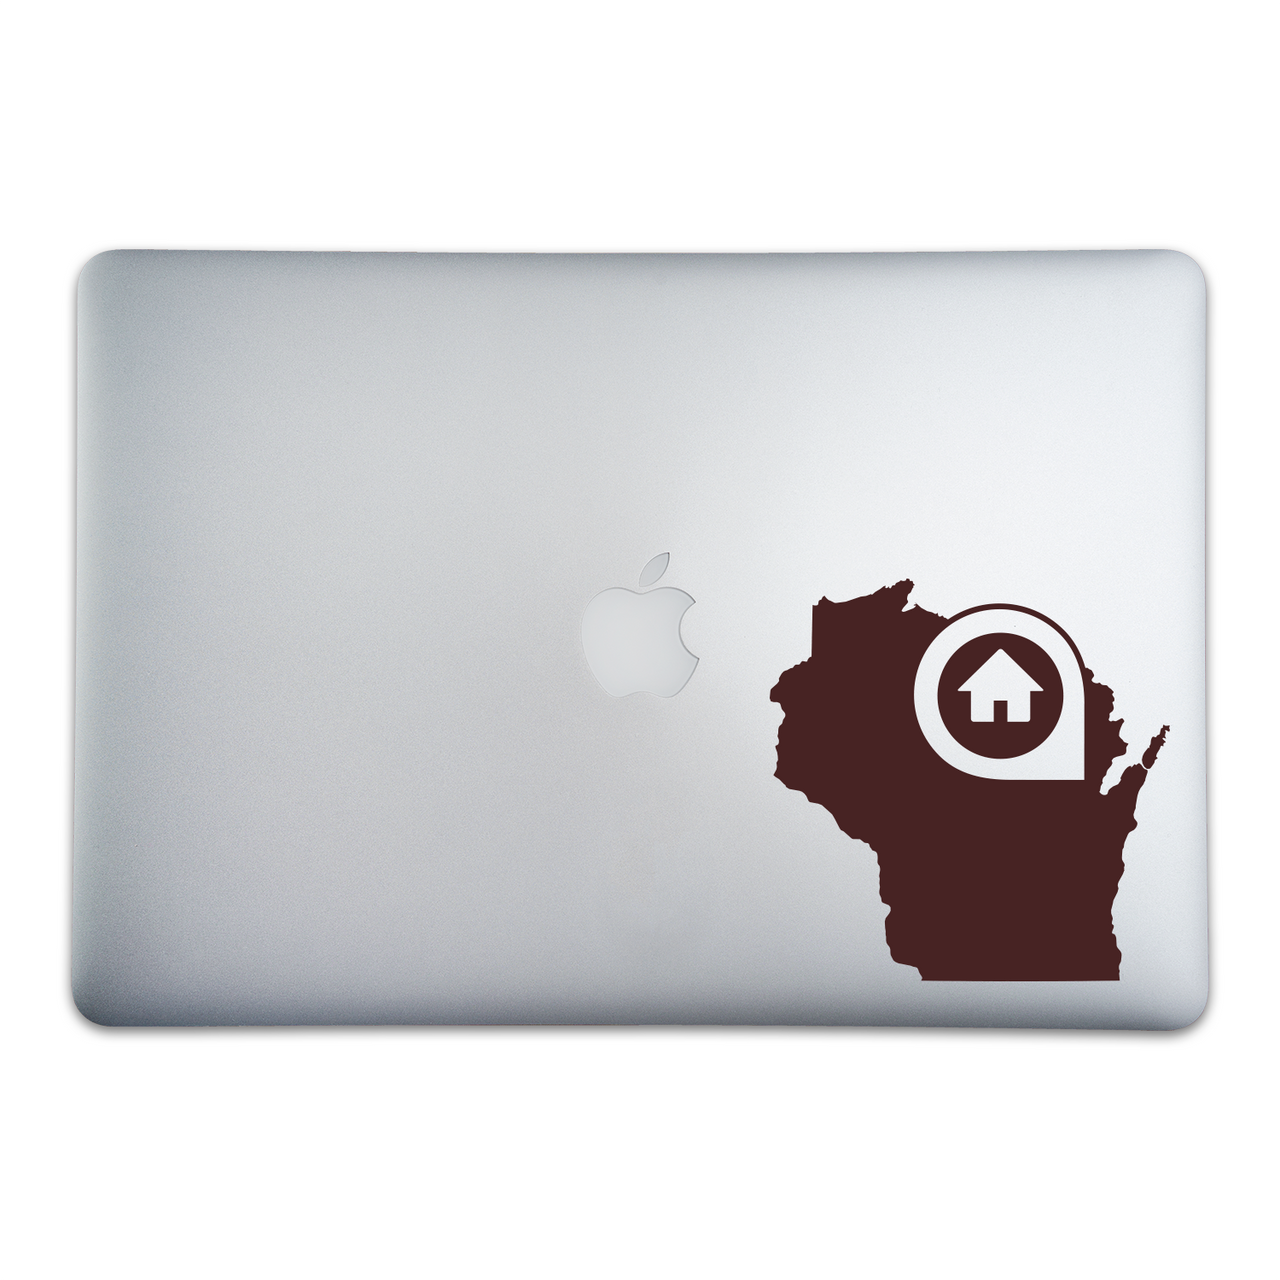 Green Bay Wisconsin Home Sticker On A 15-Inch Macbook Pro